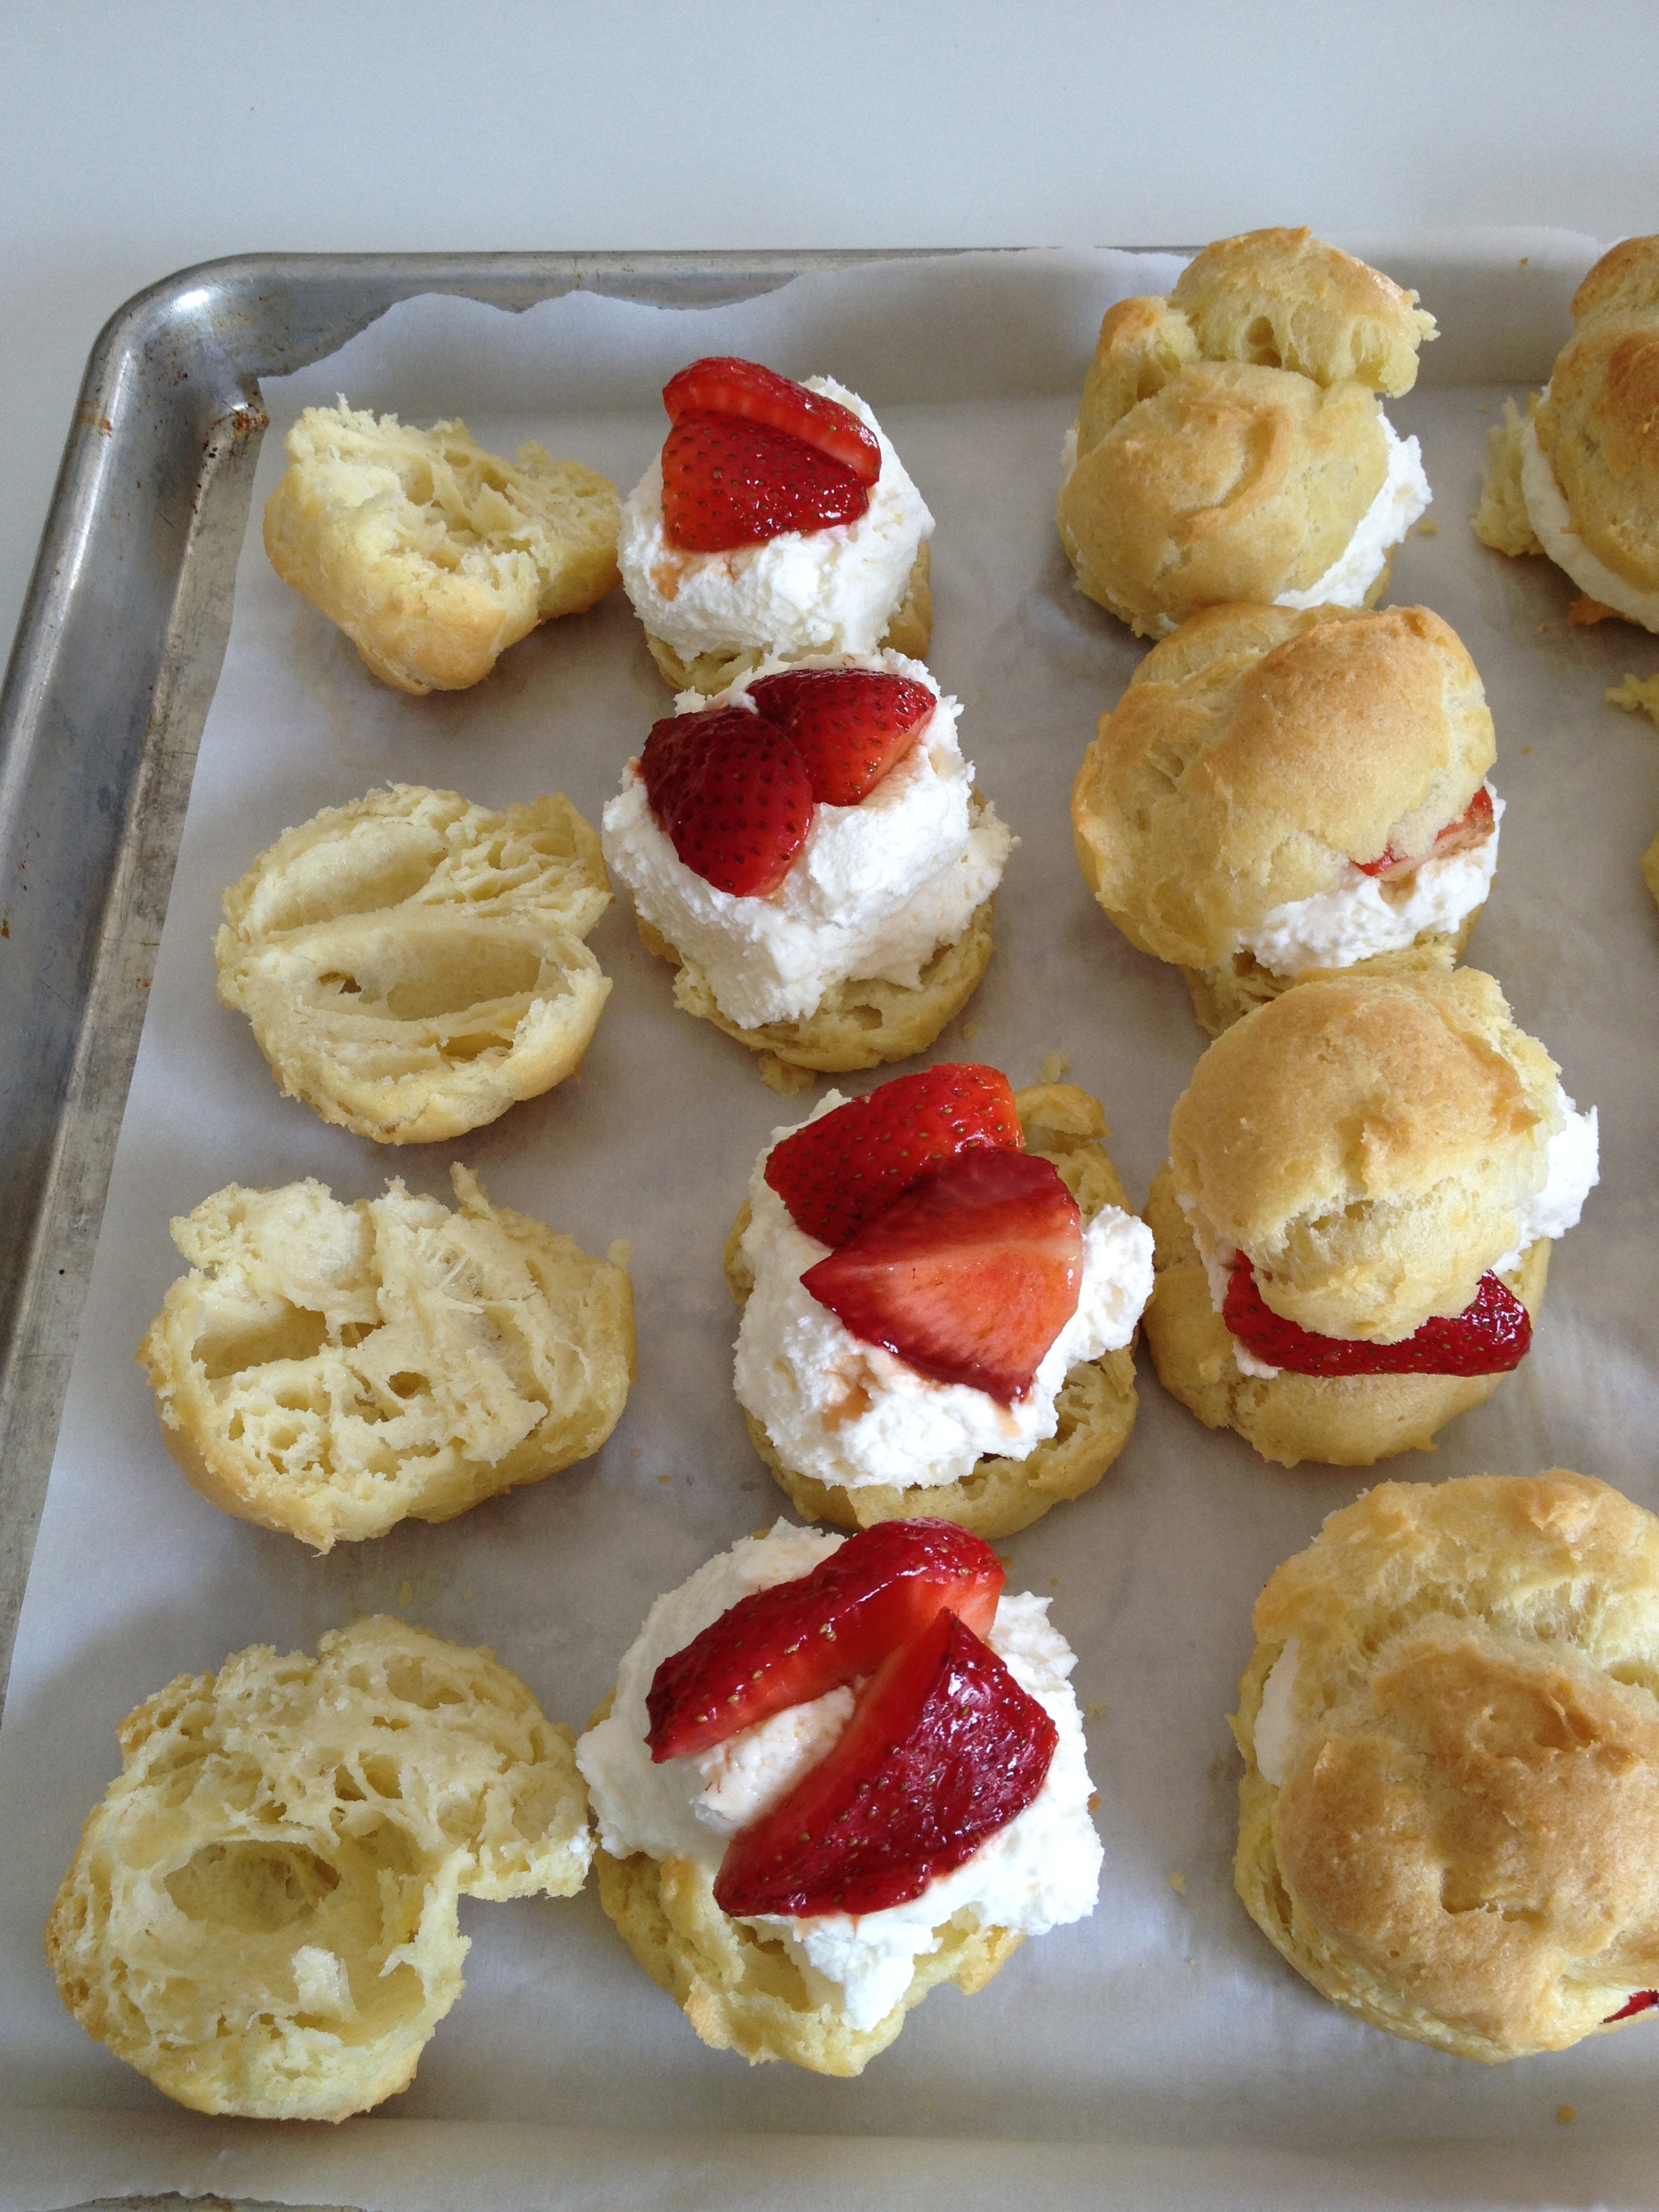 Strawberry Cream Puffs With Milk Chocolate Sauce Recipes — Dishmaps